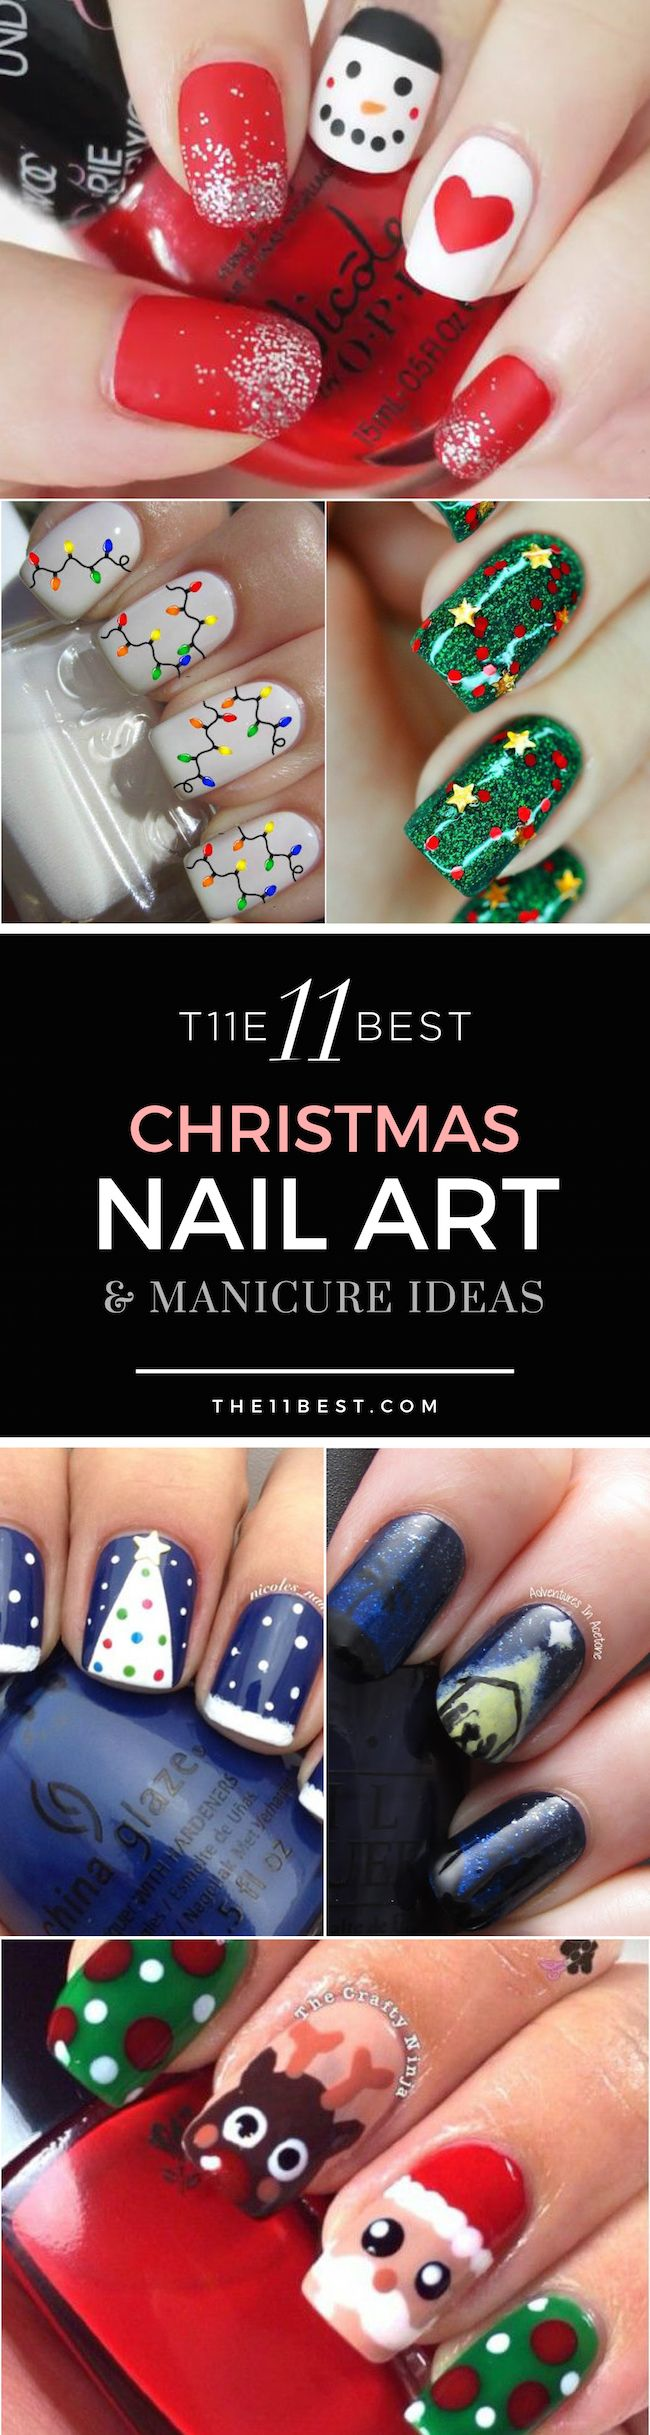 Great Christmas nail art that you'll love...! Lexi⭐️.